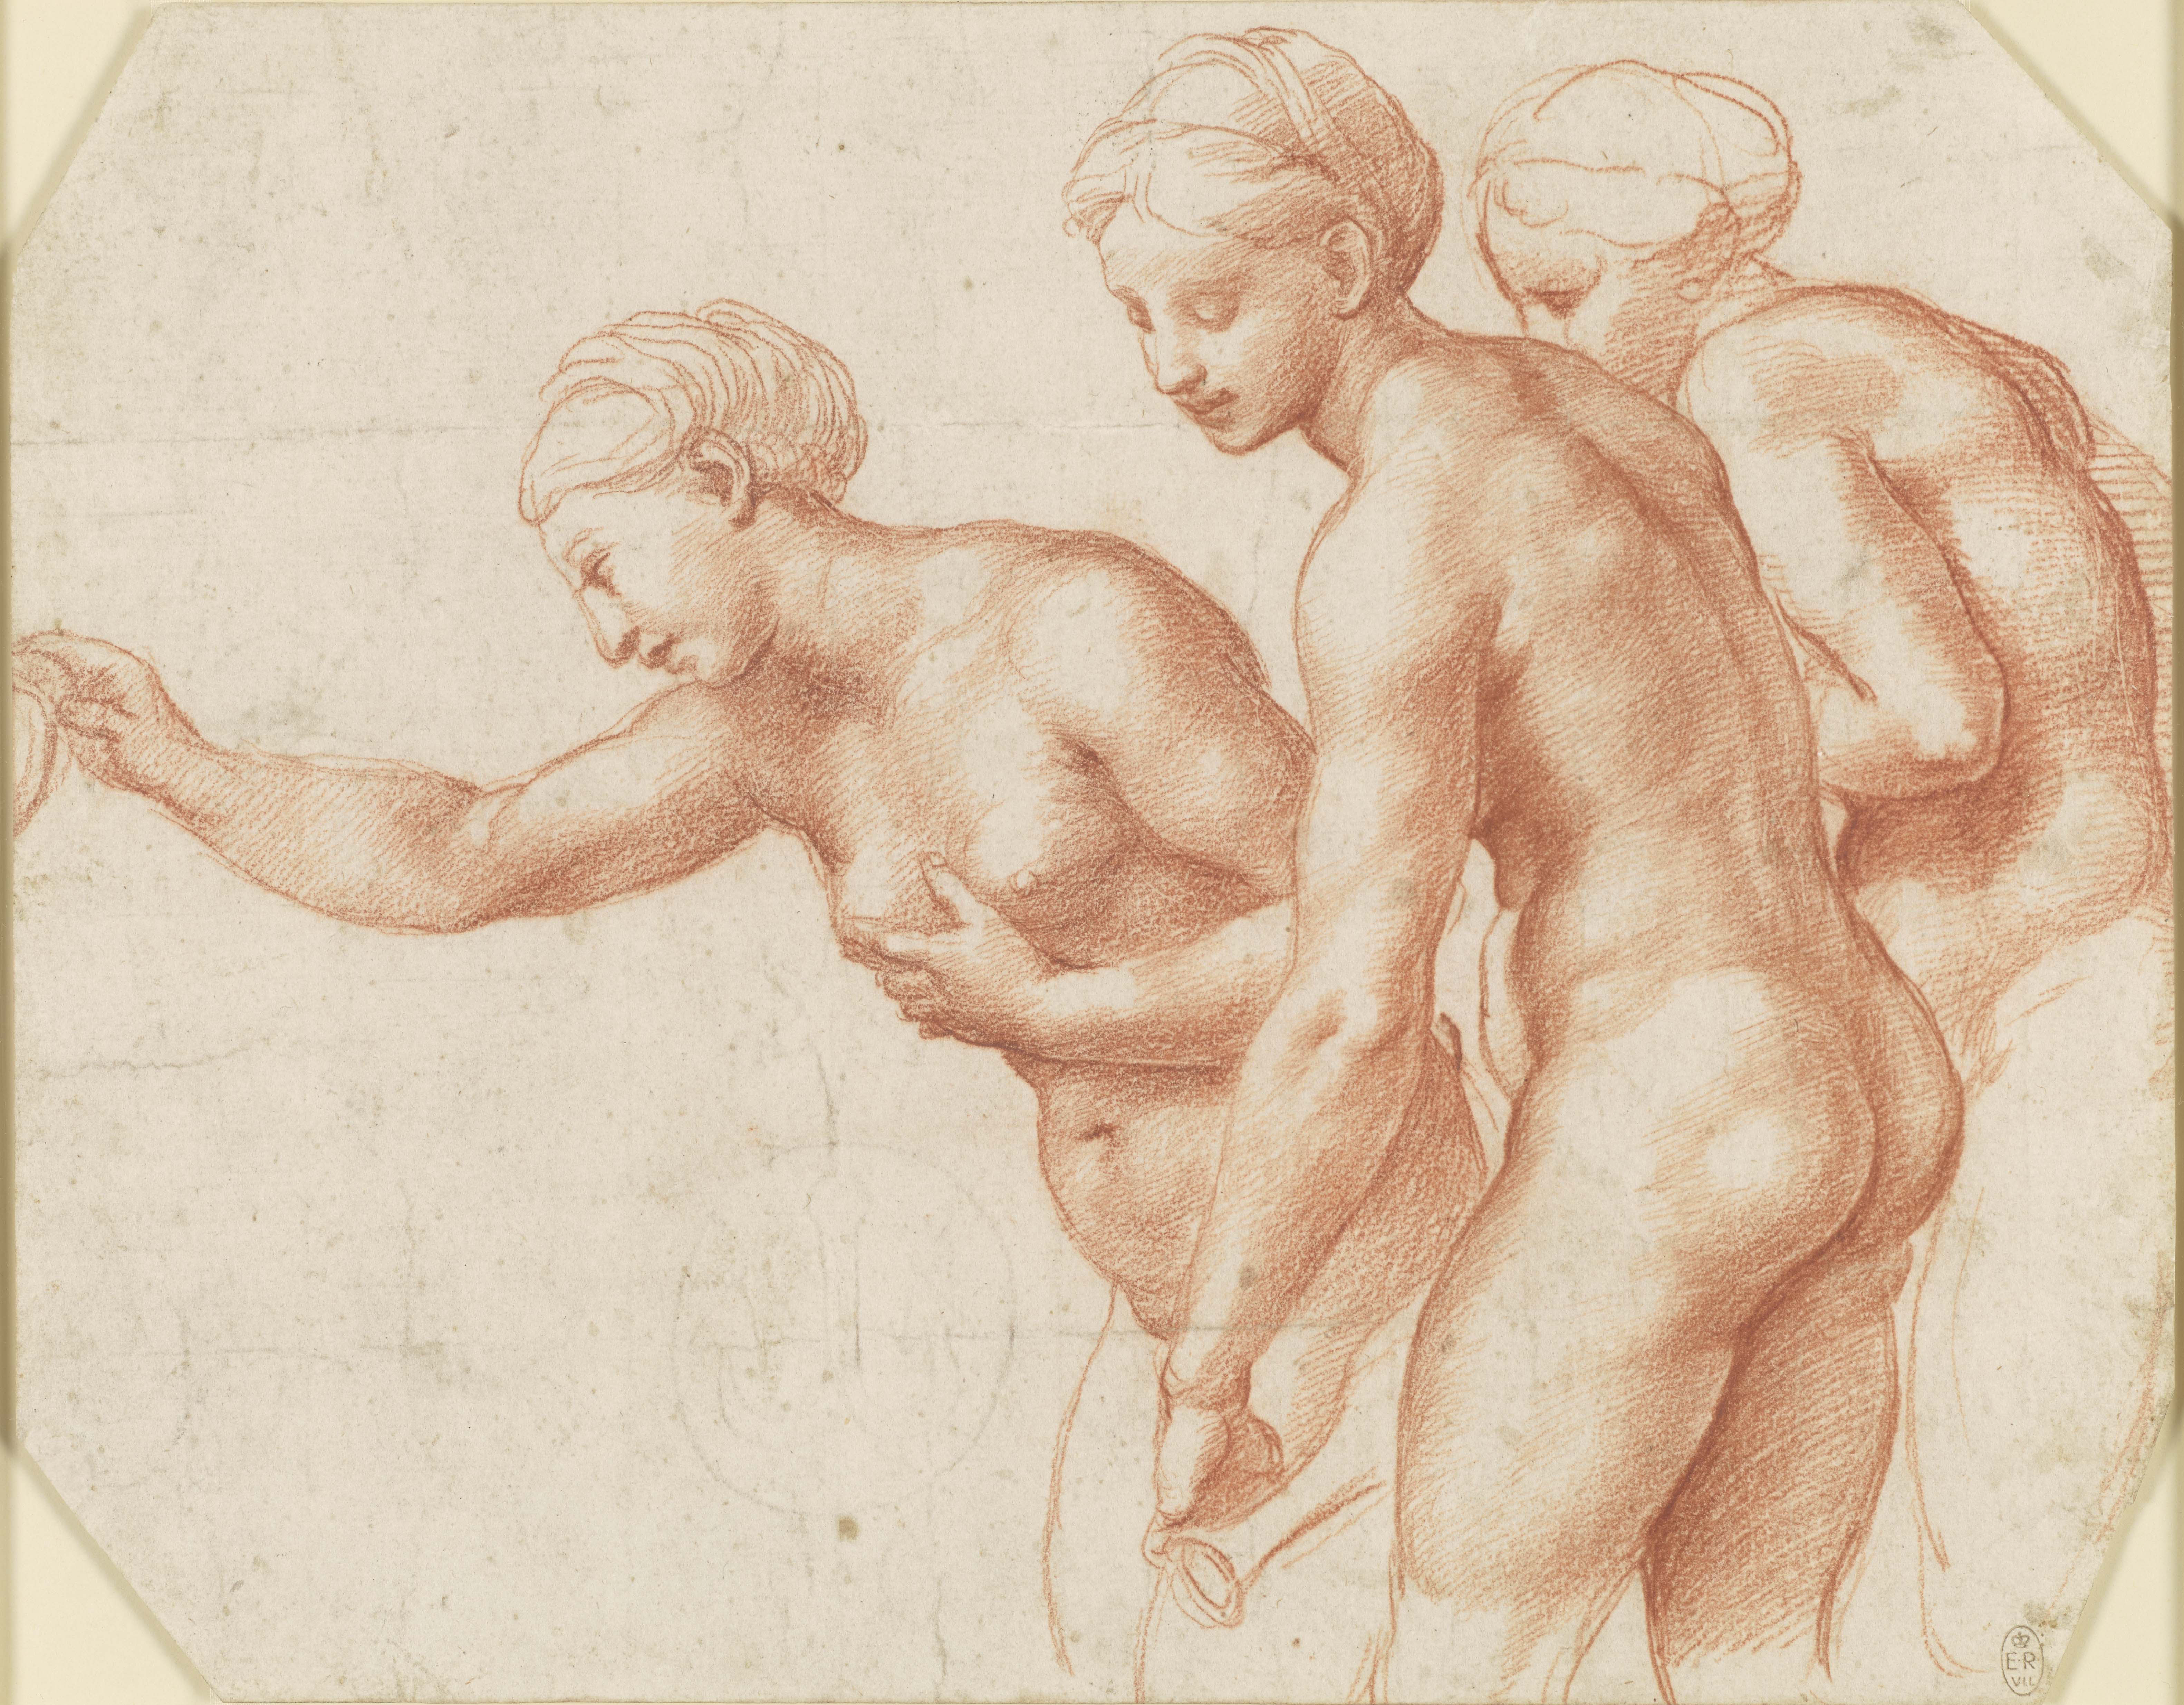 Raphael, The Three Graces, c. 1517-18. Red chalck on paper, 20.3 x 25.8 cm Royal Collection Trust / Her Majesty Queen Elisabeth II 2019